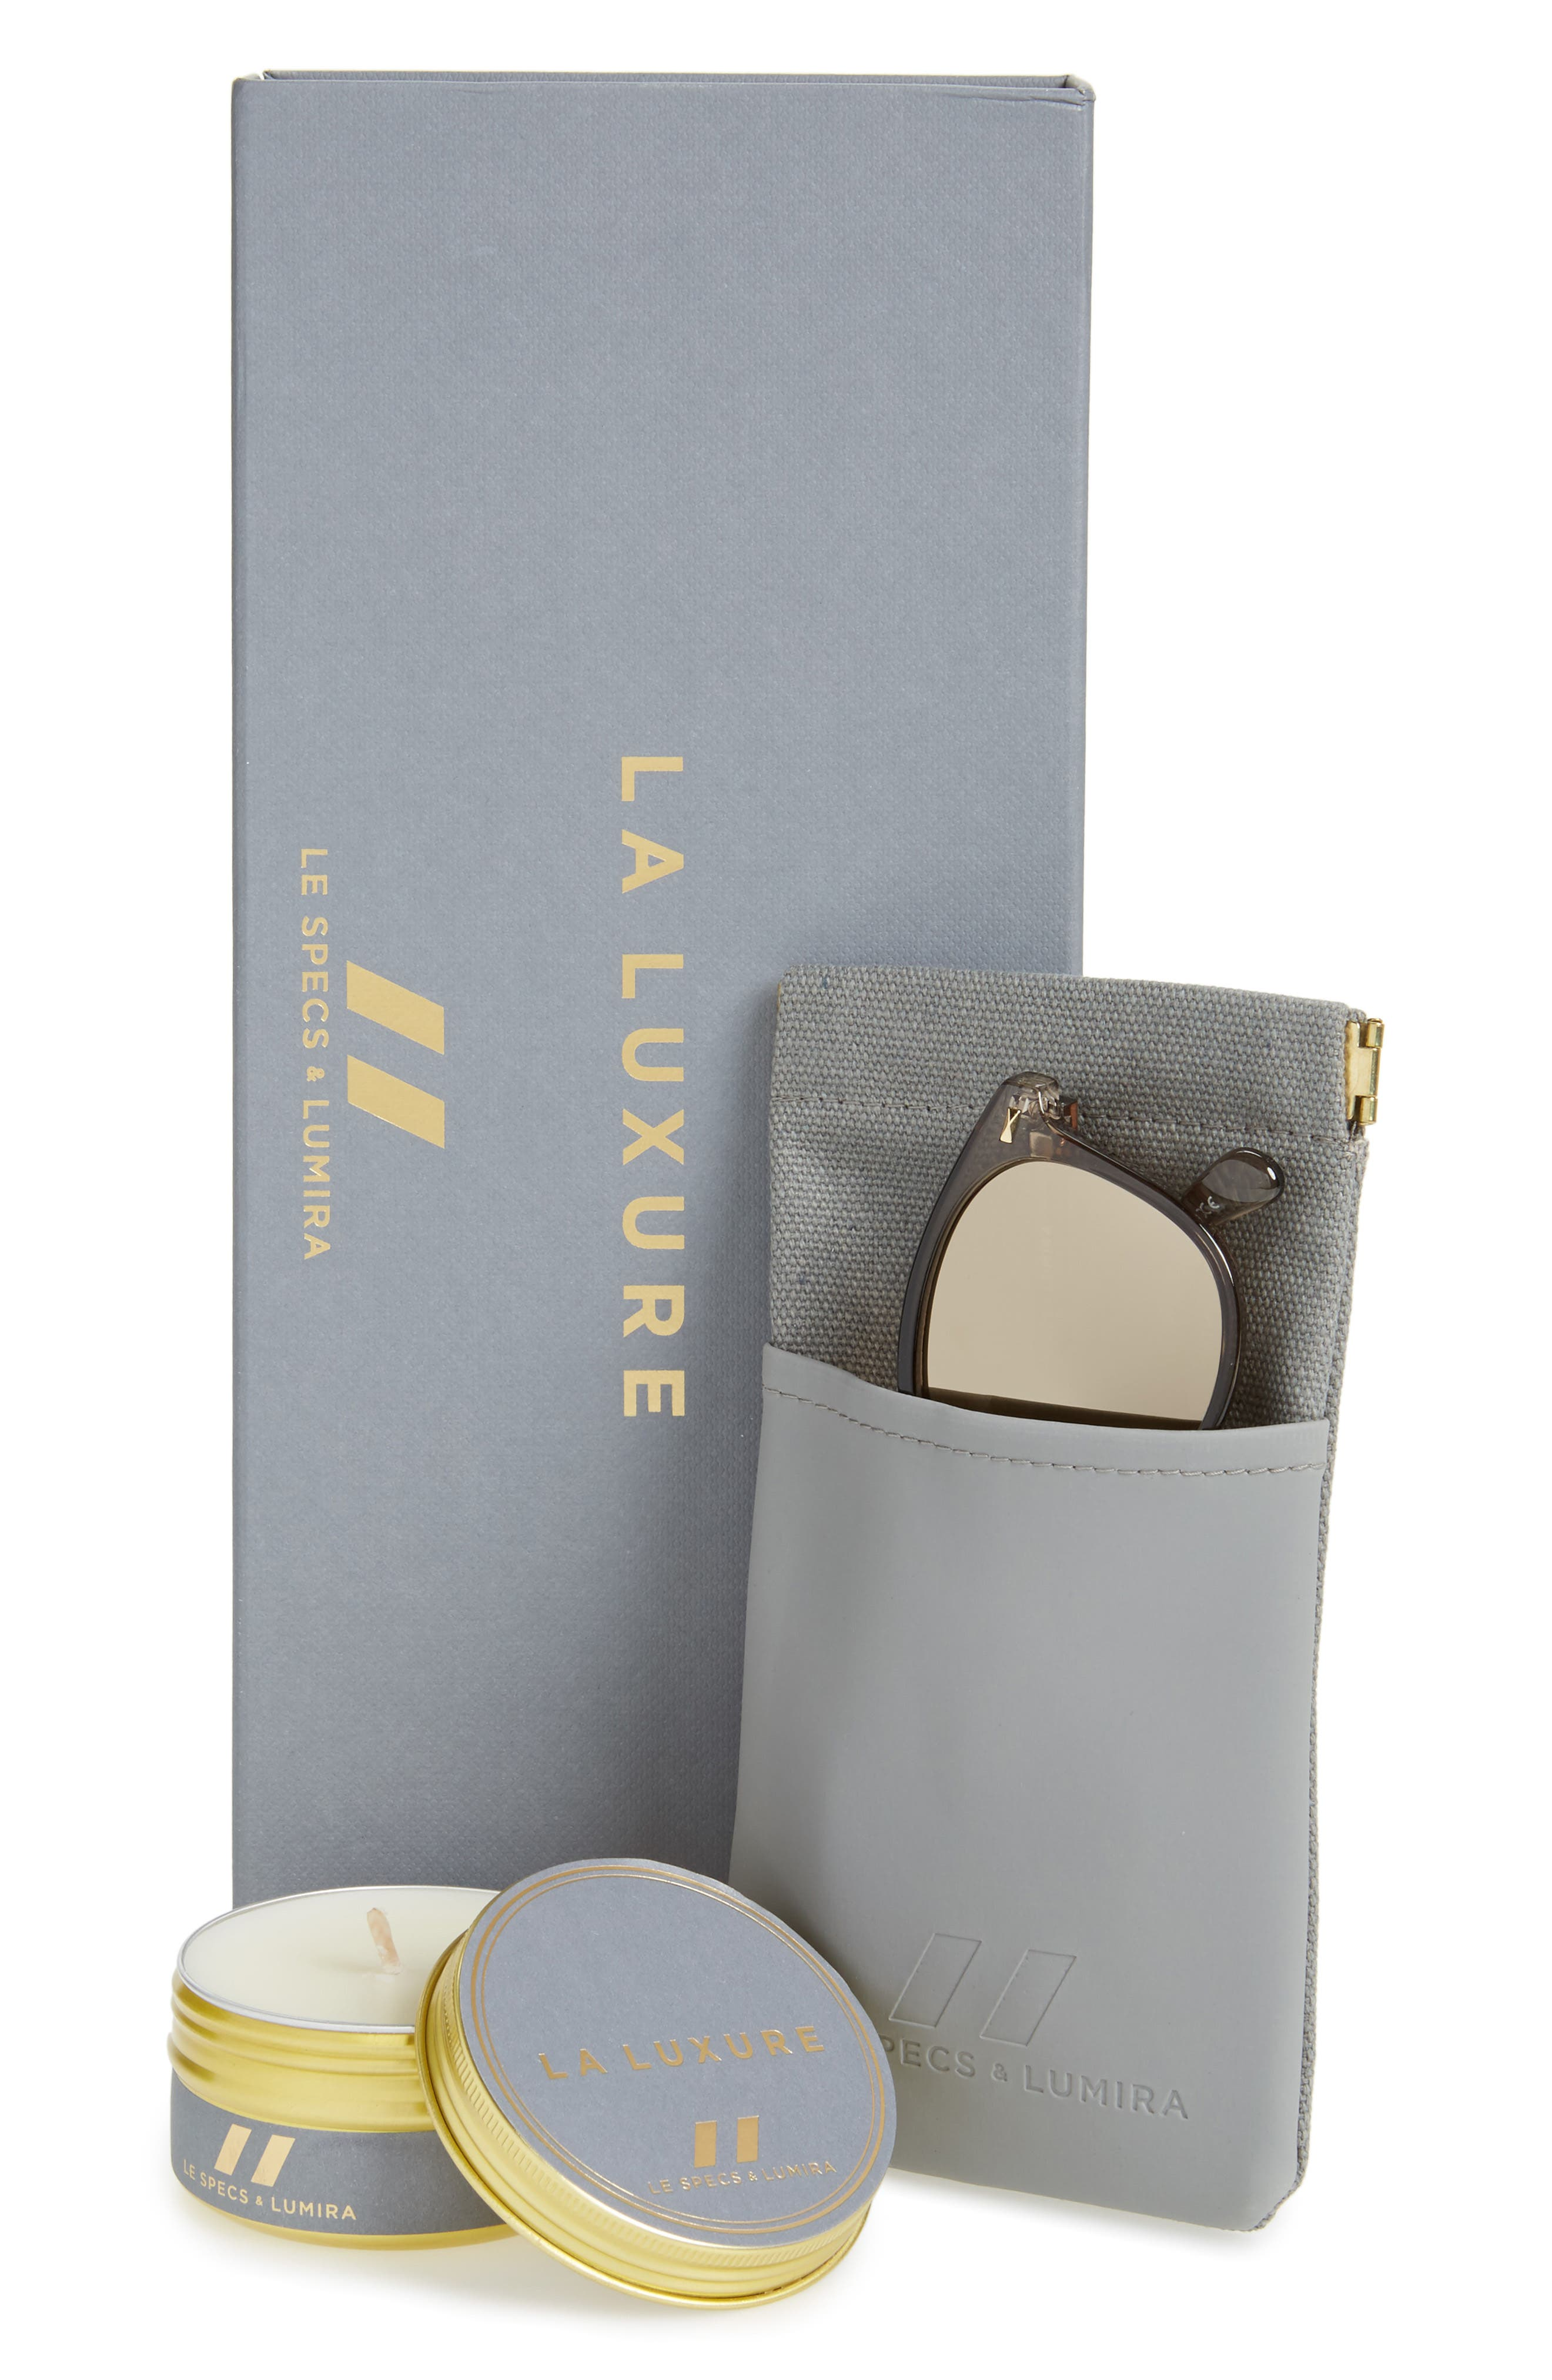 x Lumira Bandwagon 51mm Sunglasses & Candle Gift Set,                             Alternate thumbnail 2, color,                             Mist Copper